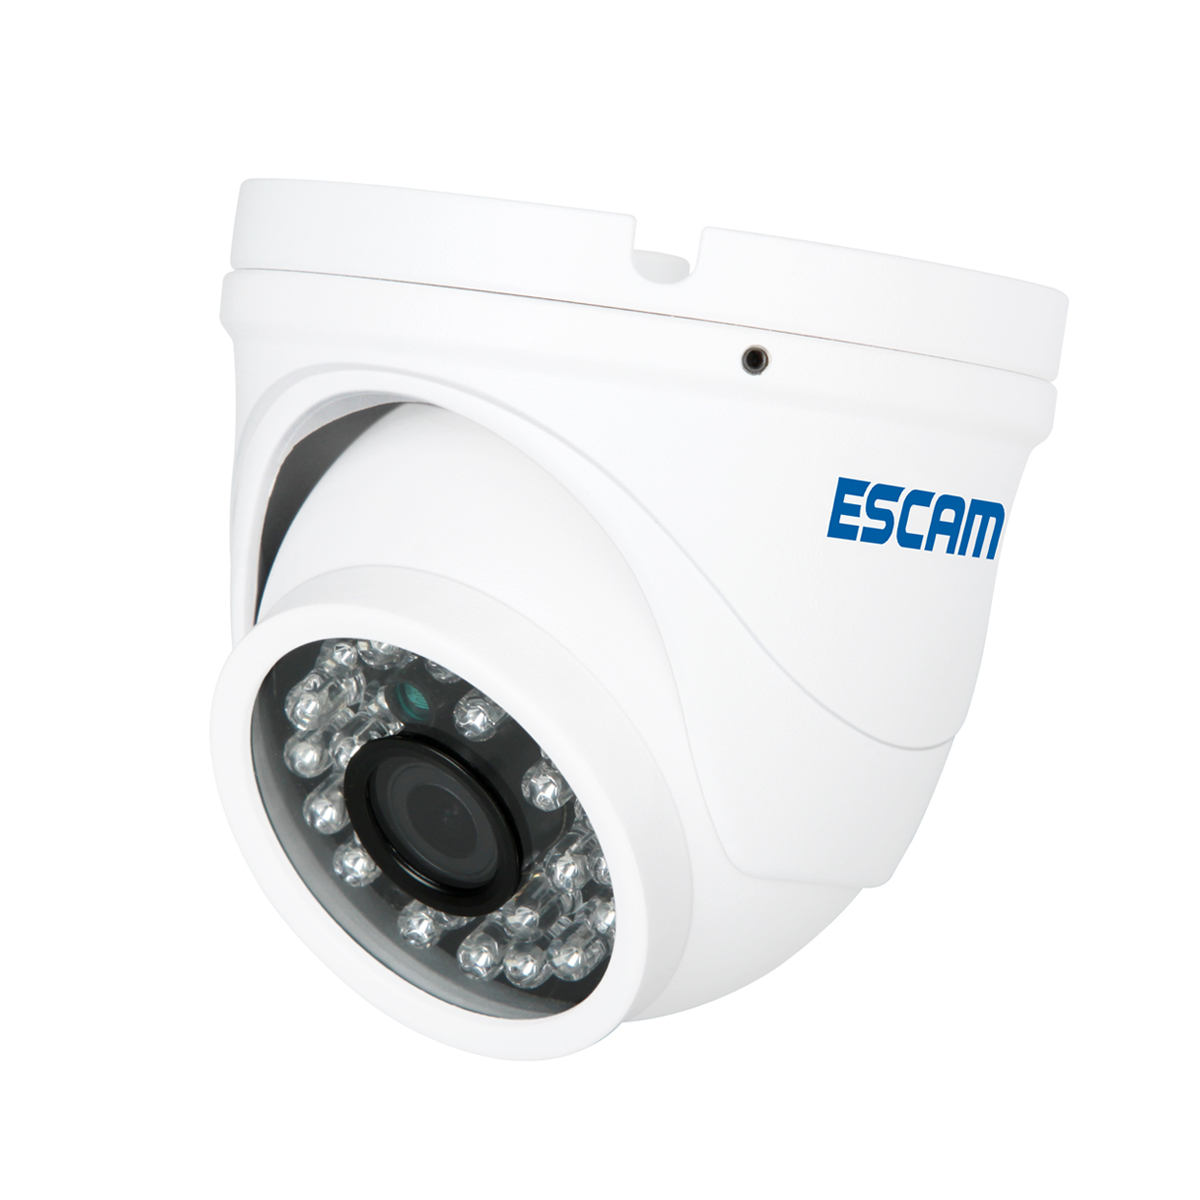 Escam QD520 Peashooter HD720P P2P IR IP Security камера